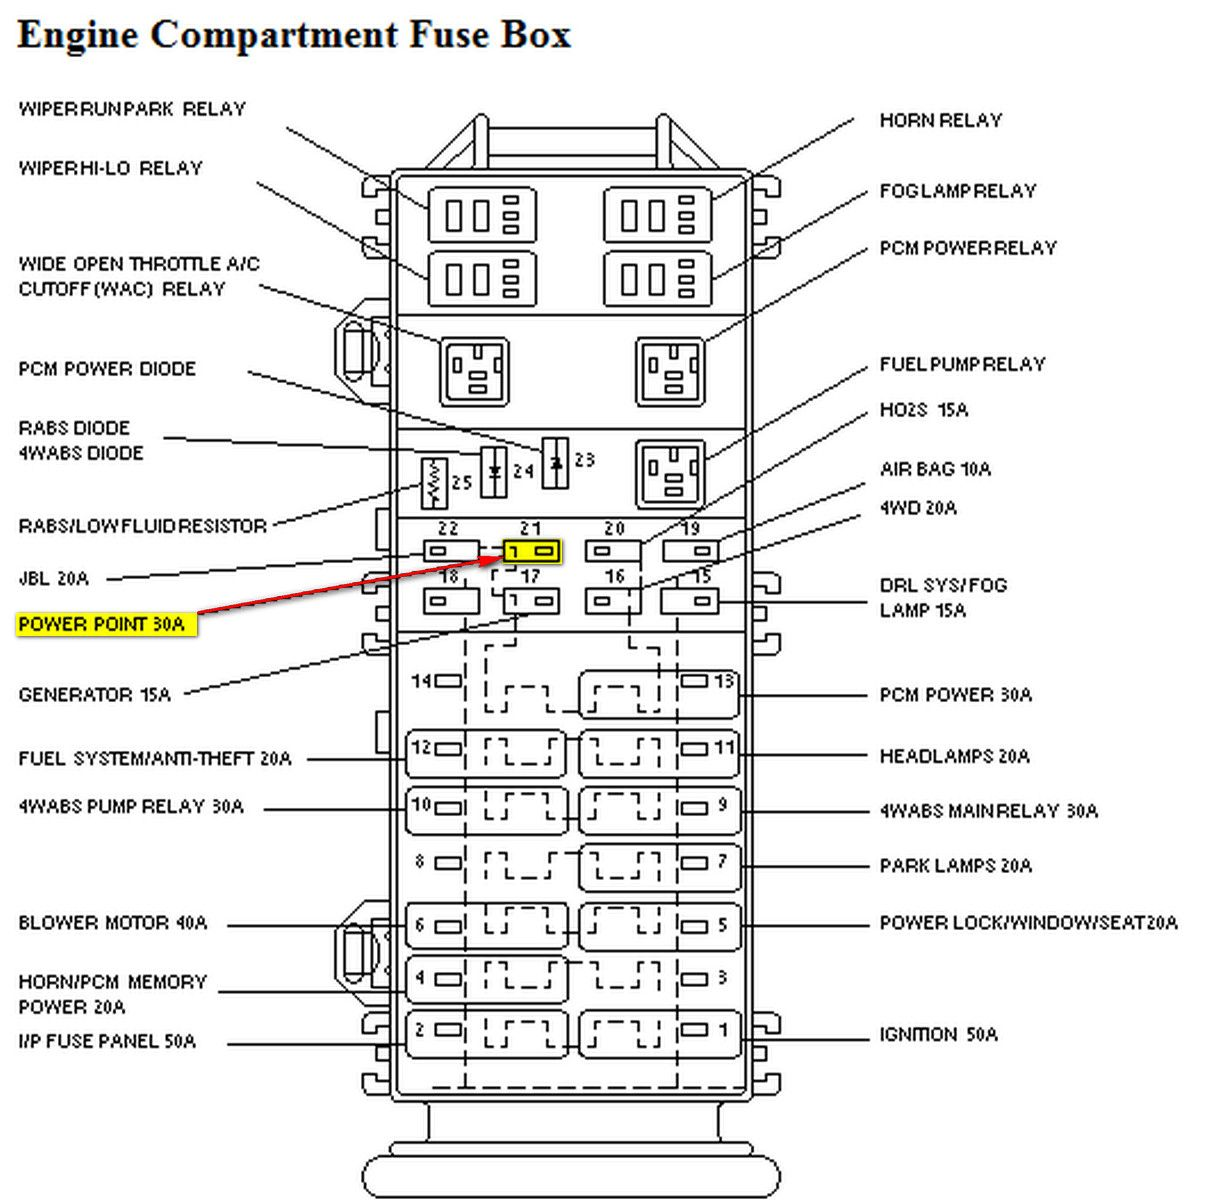 87 Ranger Fuse Box Diagram